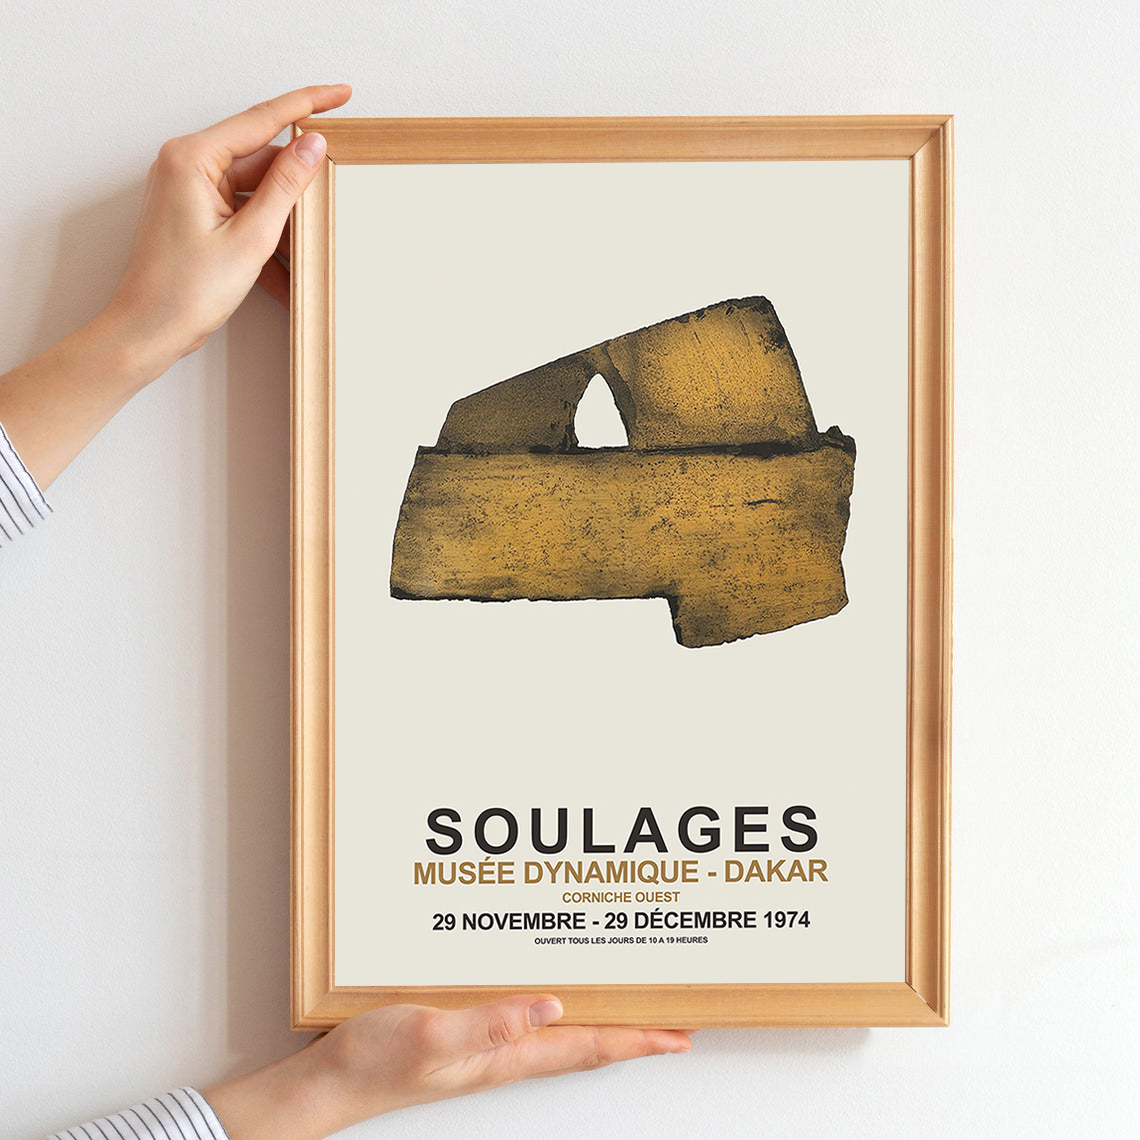 Pierre Soulages poster Soulage print Abstract art poster Museum exhibition Art prints Exhibition print Soulages Exhibition poster